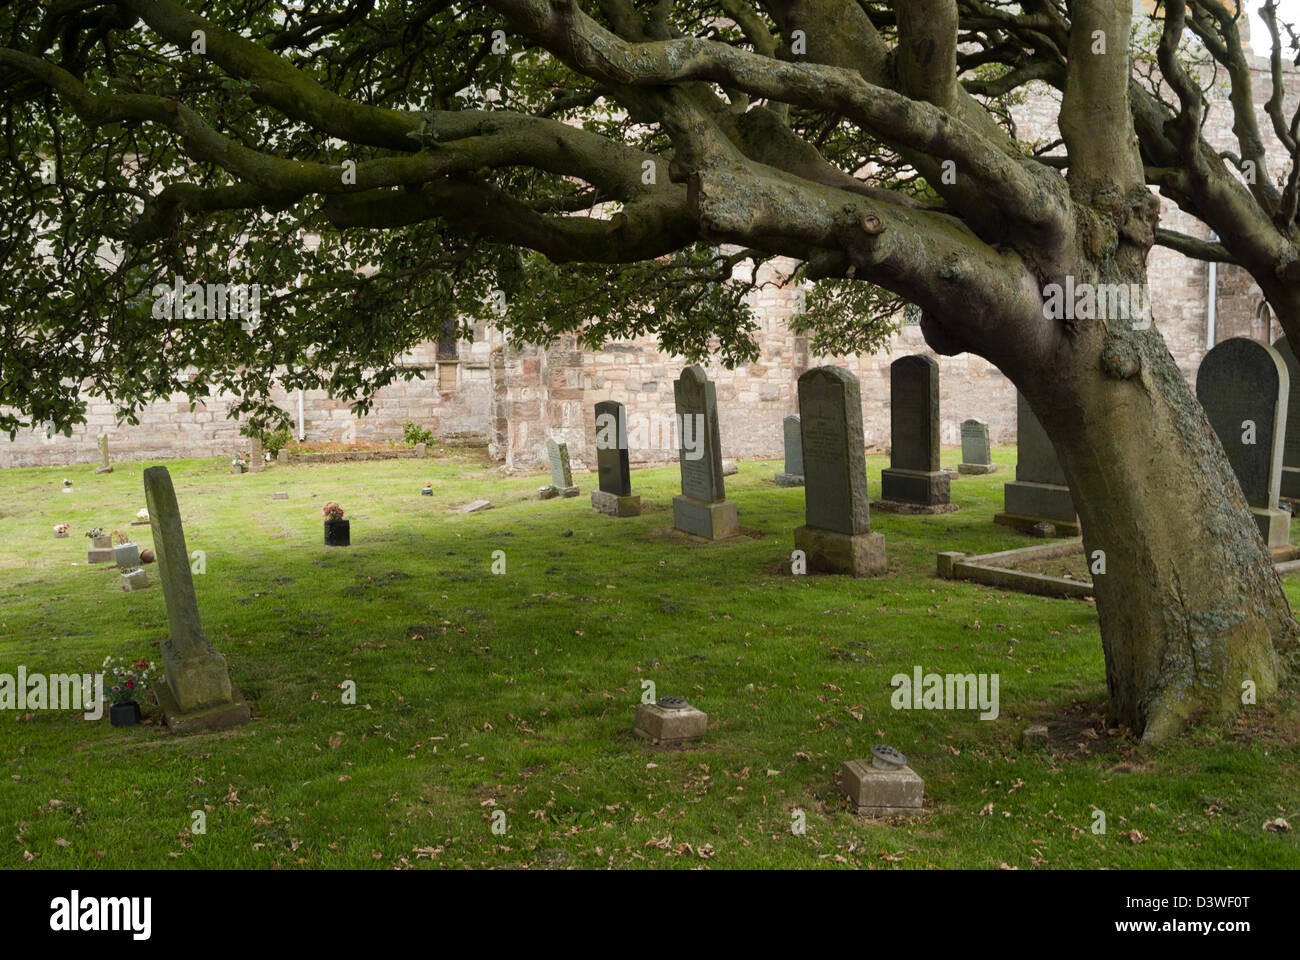 Beech tree leans over the gravestones in the churchyard, Lindisfarne, Northumberland, England - Stock Image